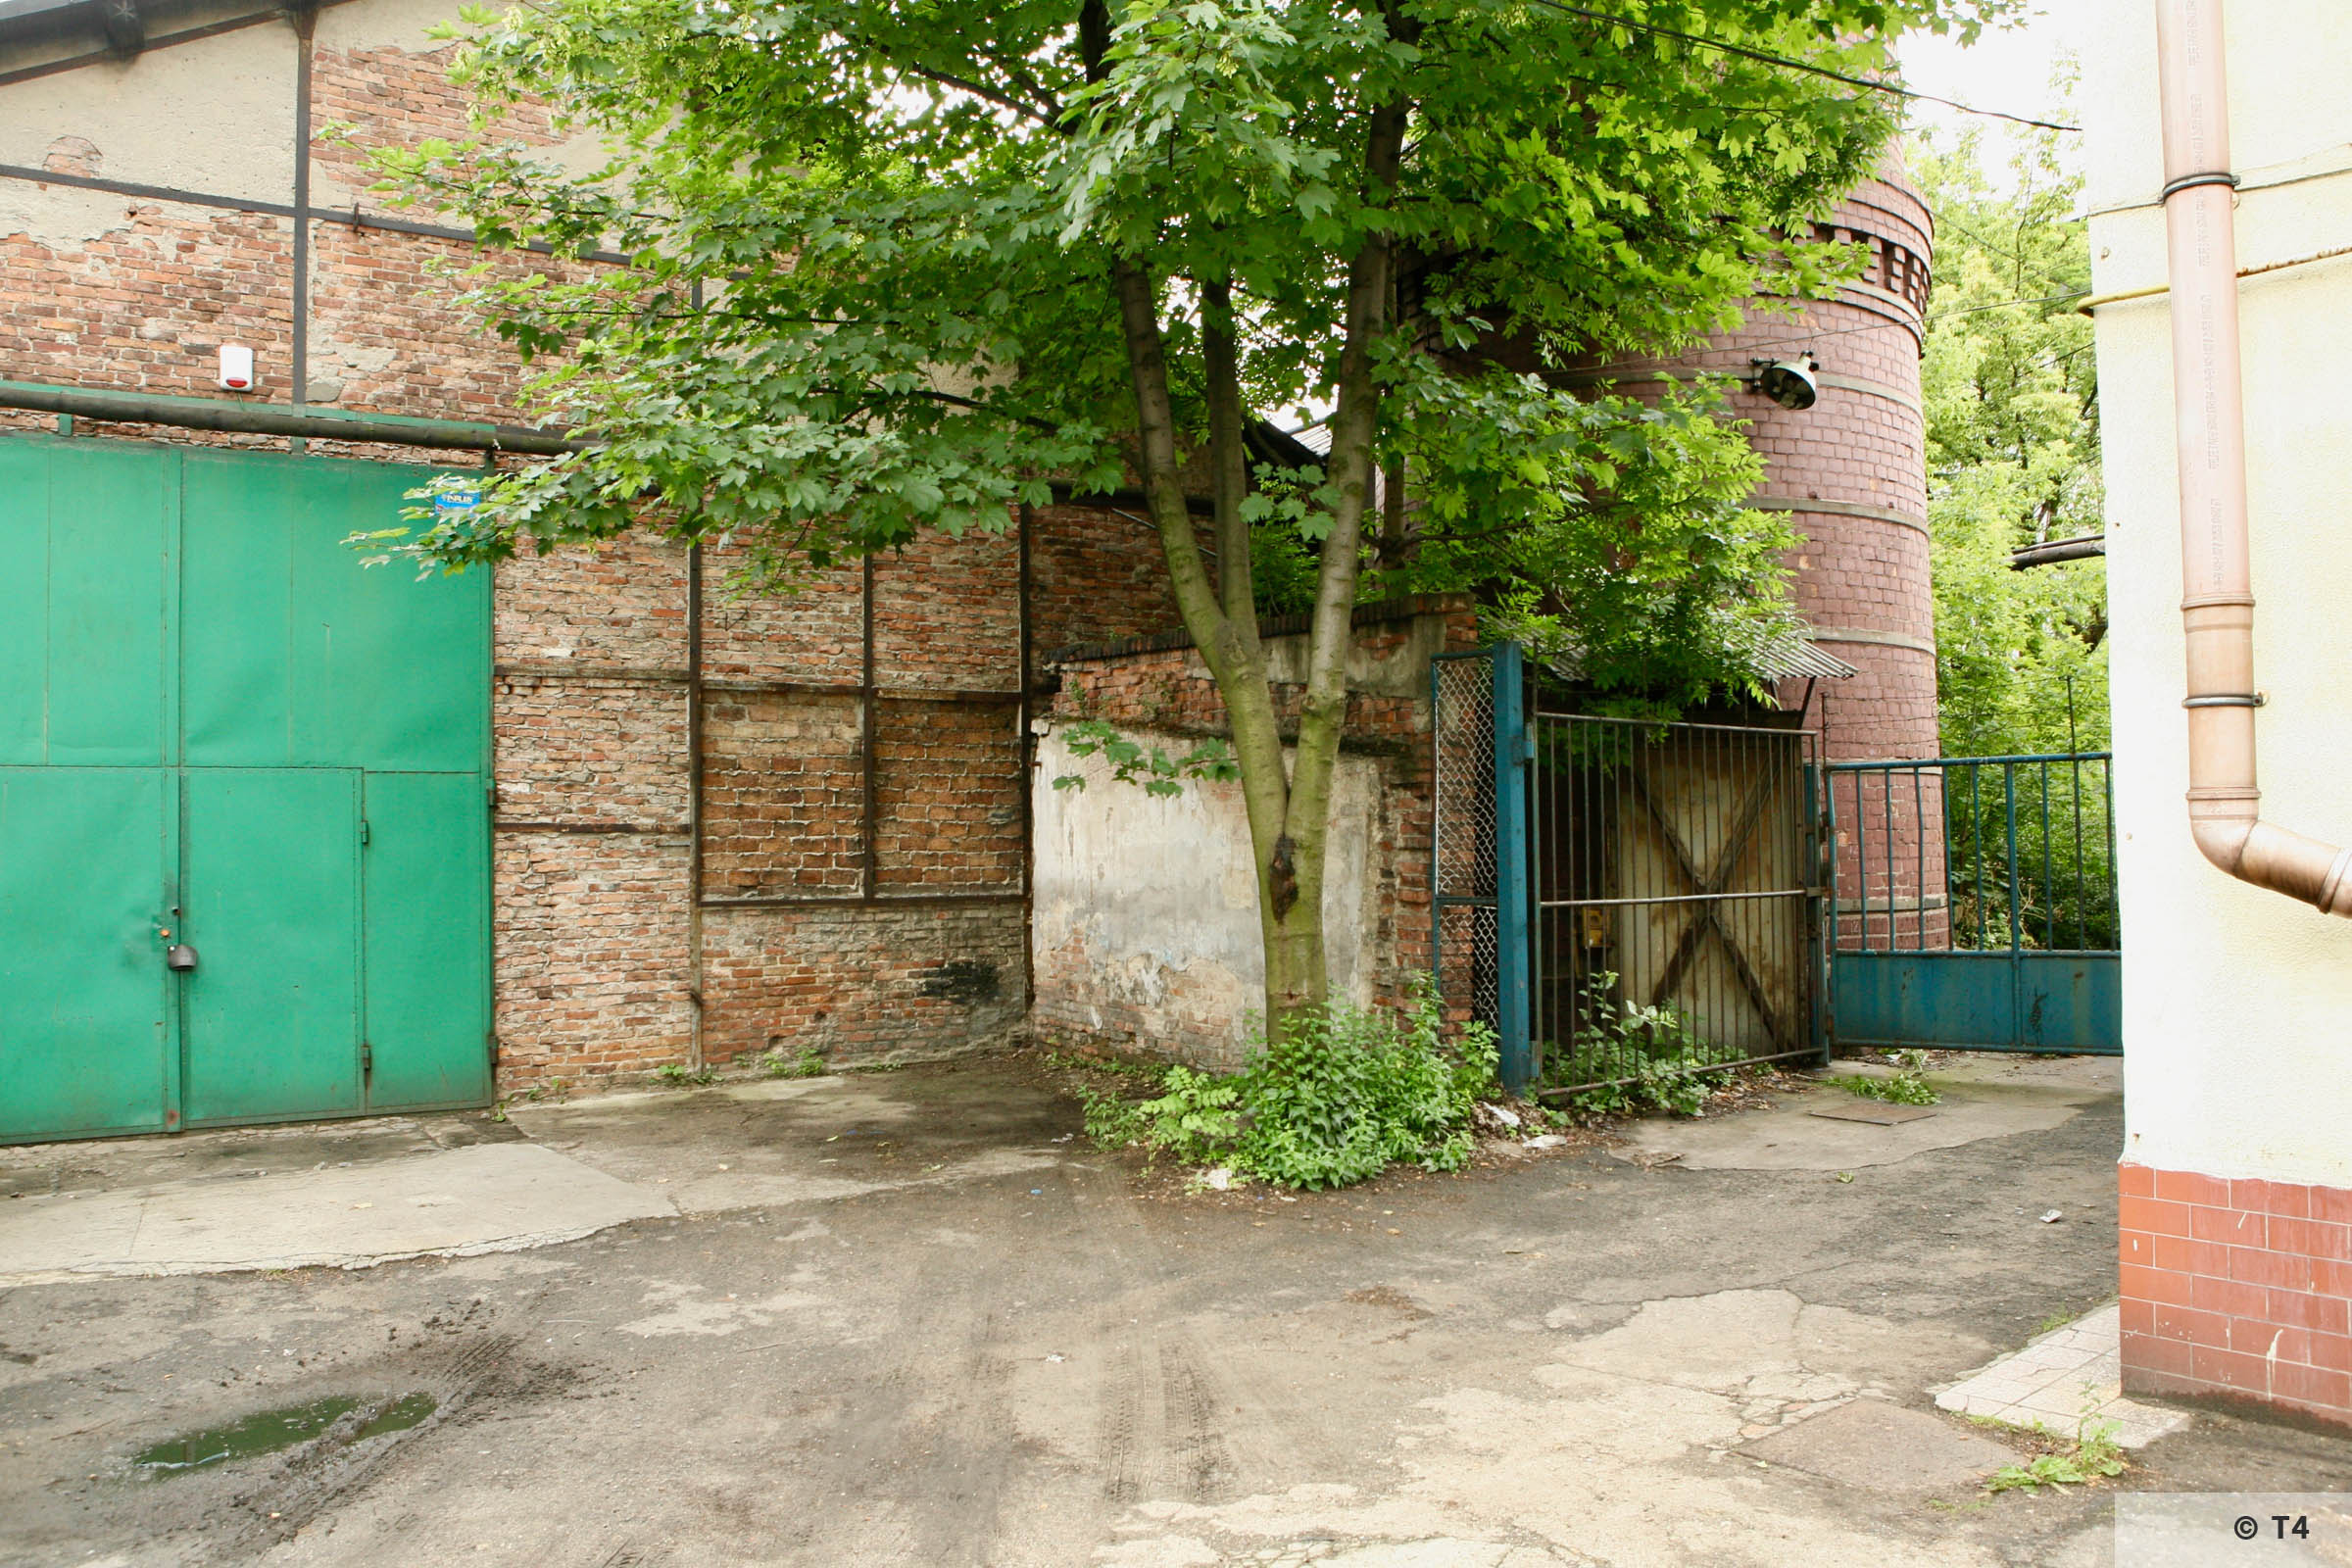 Workshop where prisoners were accommodated. Entrance gate to the steel works and chimney. 2007 T4 9491